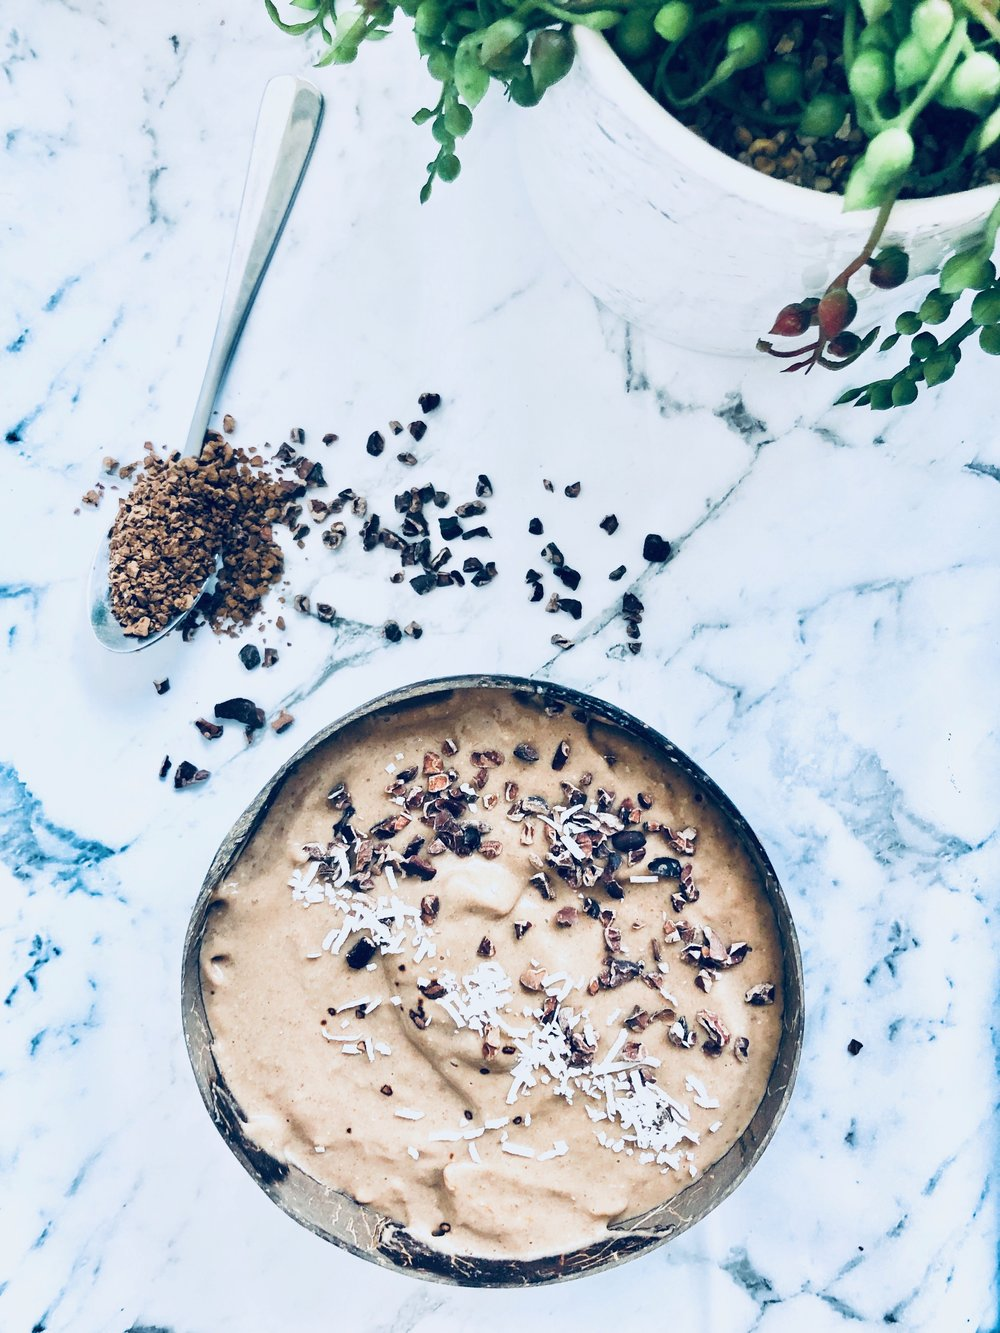 - Ingredients1 Frozen BananaA handful of frozen cauliflower1 tsp MCT oil - swap for coconut oil if you don't have any MCT oil1 heaped tablespoon of cacao powderA serving of choc proteinA serving of collagen1 - 2 teaspoons of coffee (depending on how strong you like it) 1 tablespoon of almond butter½ cup of almond milk (may need to add more or less depending on how thick you like your smoothies)TOPPINGS: Sprinkle of cacao nibs, a handful of my granola (recipe on website) or some nuts!MethodBlend, add your toppings and enjoy!